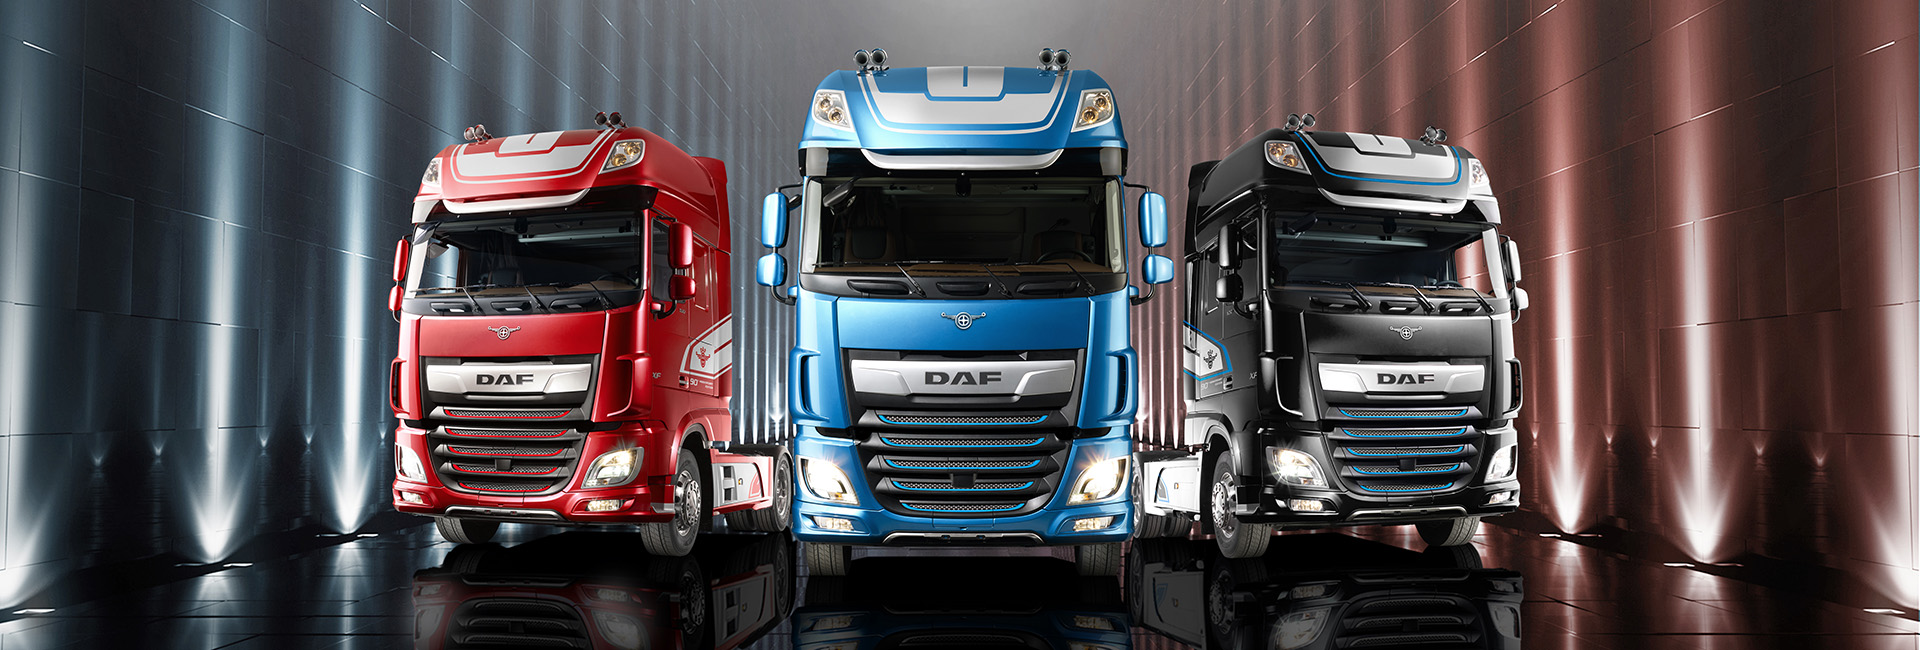 DAF Trucks Presents Limited 90th Anniversary Edition